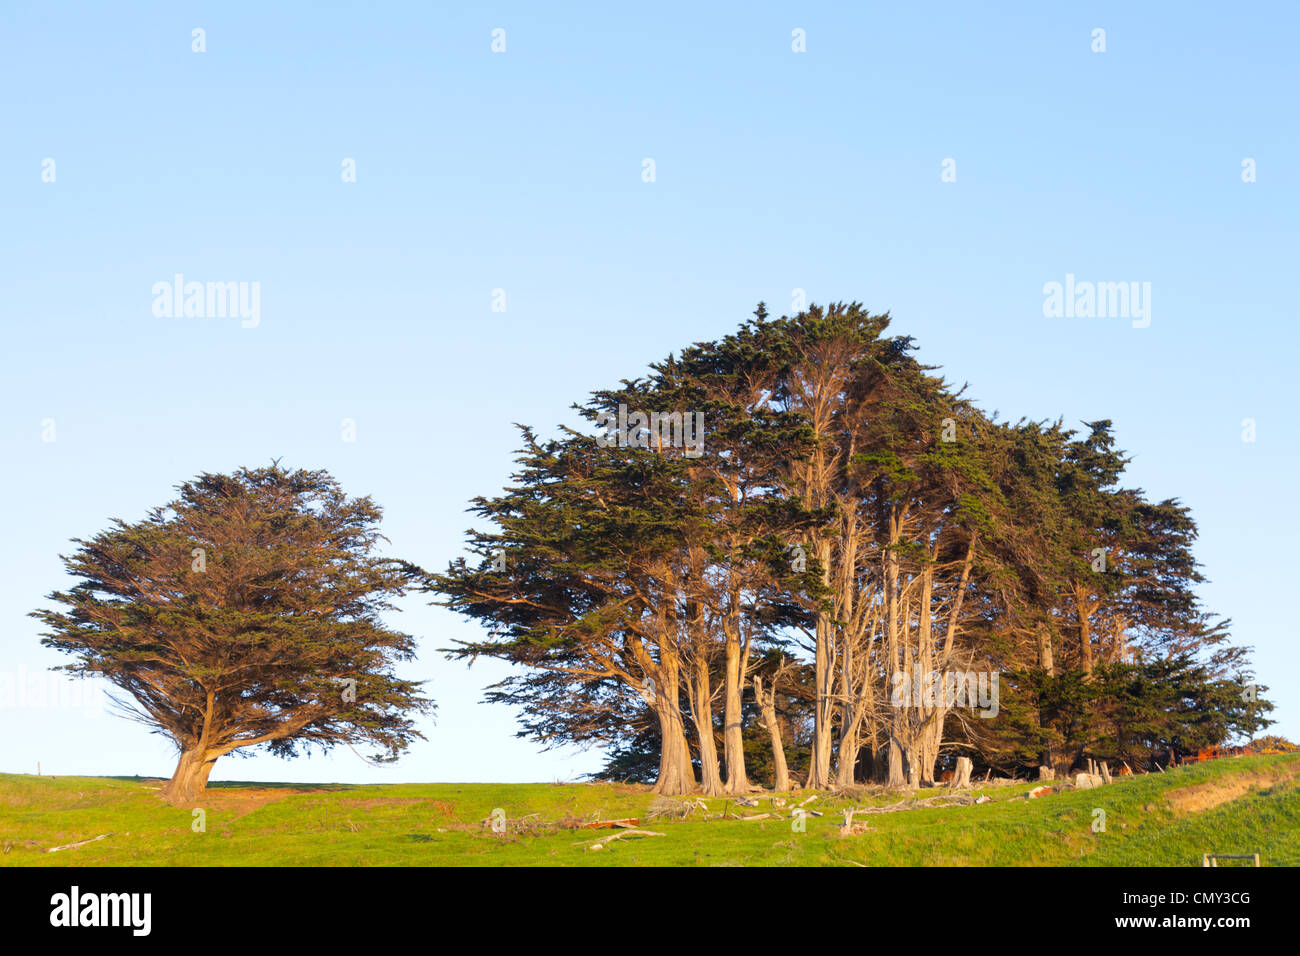 Cupressus Macrocarpa, Monterey Cypress, growing in New Zealand, where it is often used for shelter belts. - Stock Image